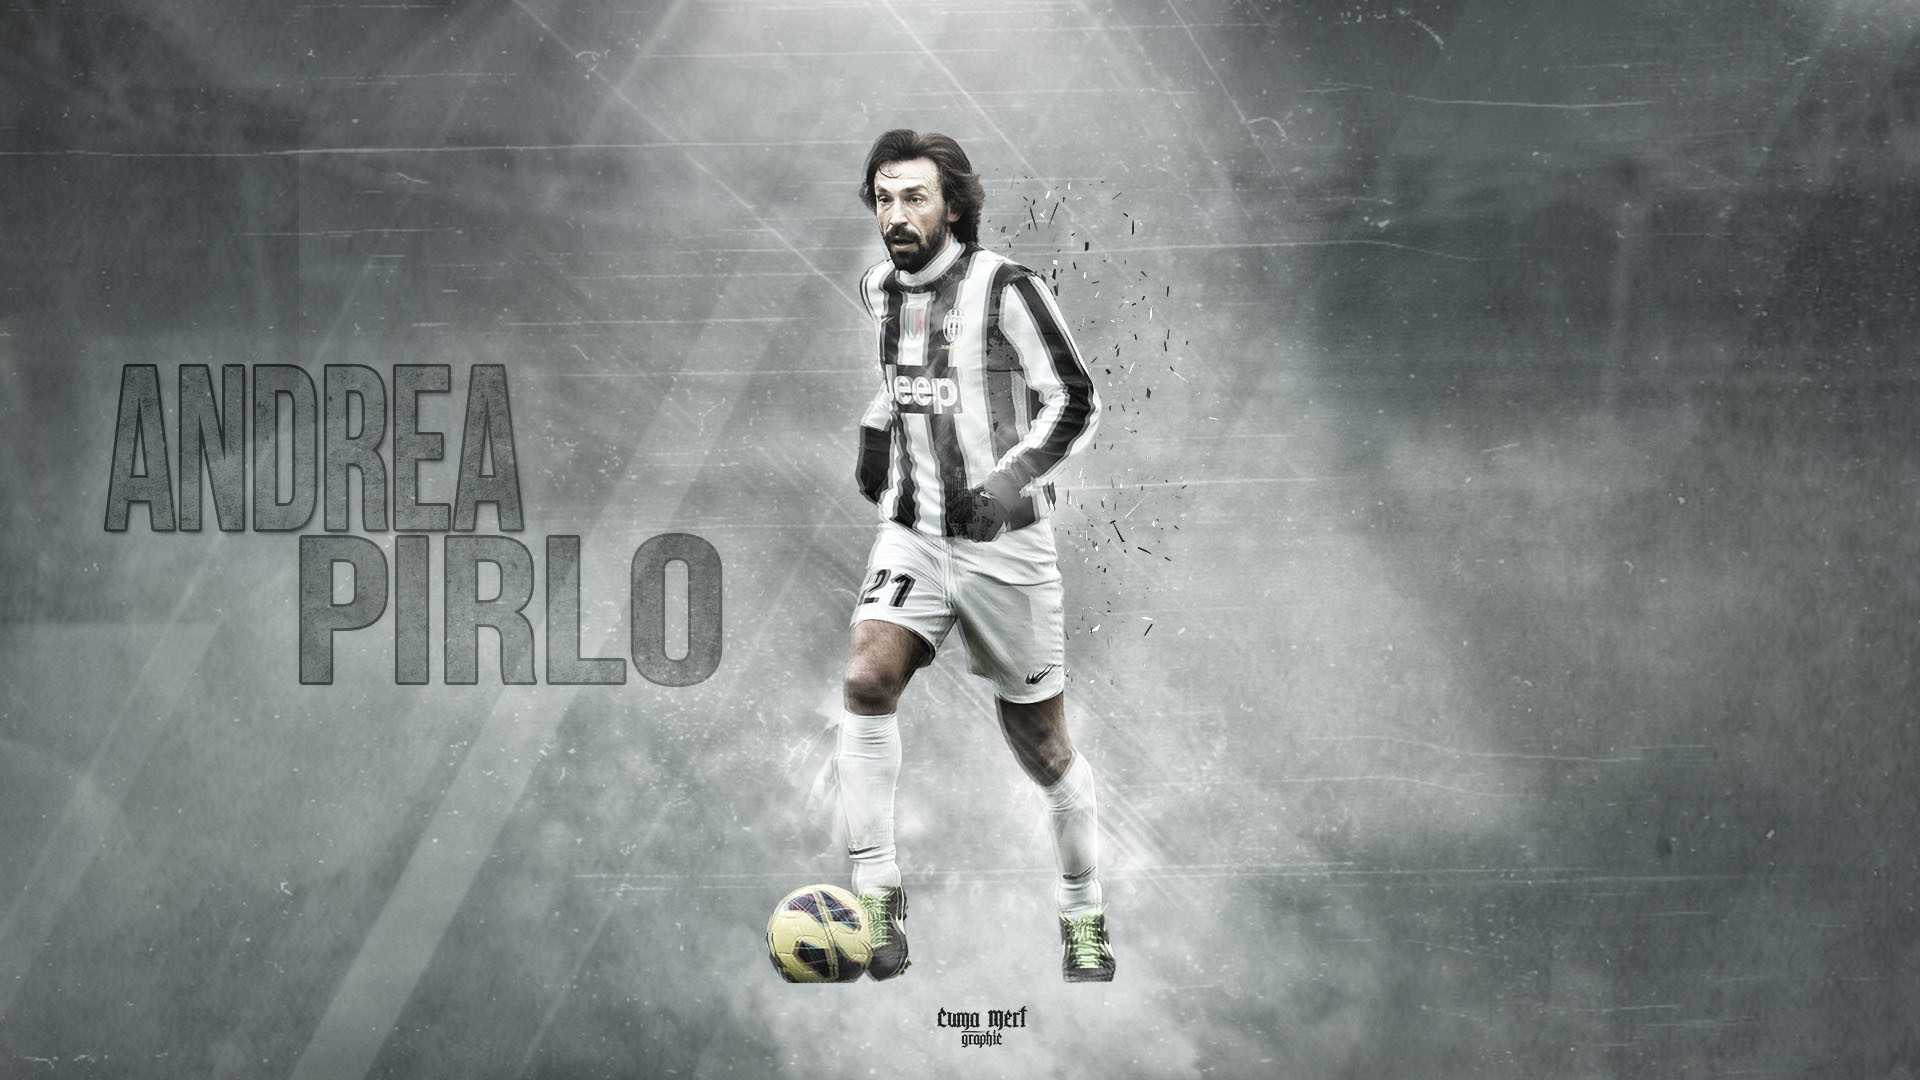 1920x1080 - Andrea Pirlo Wallpapers 15